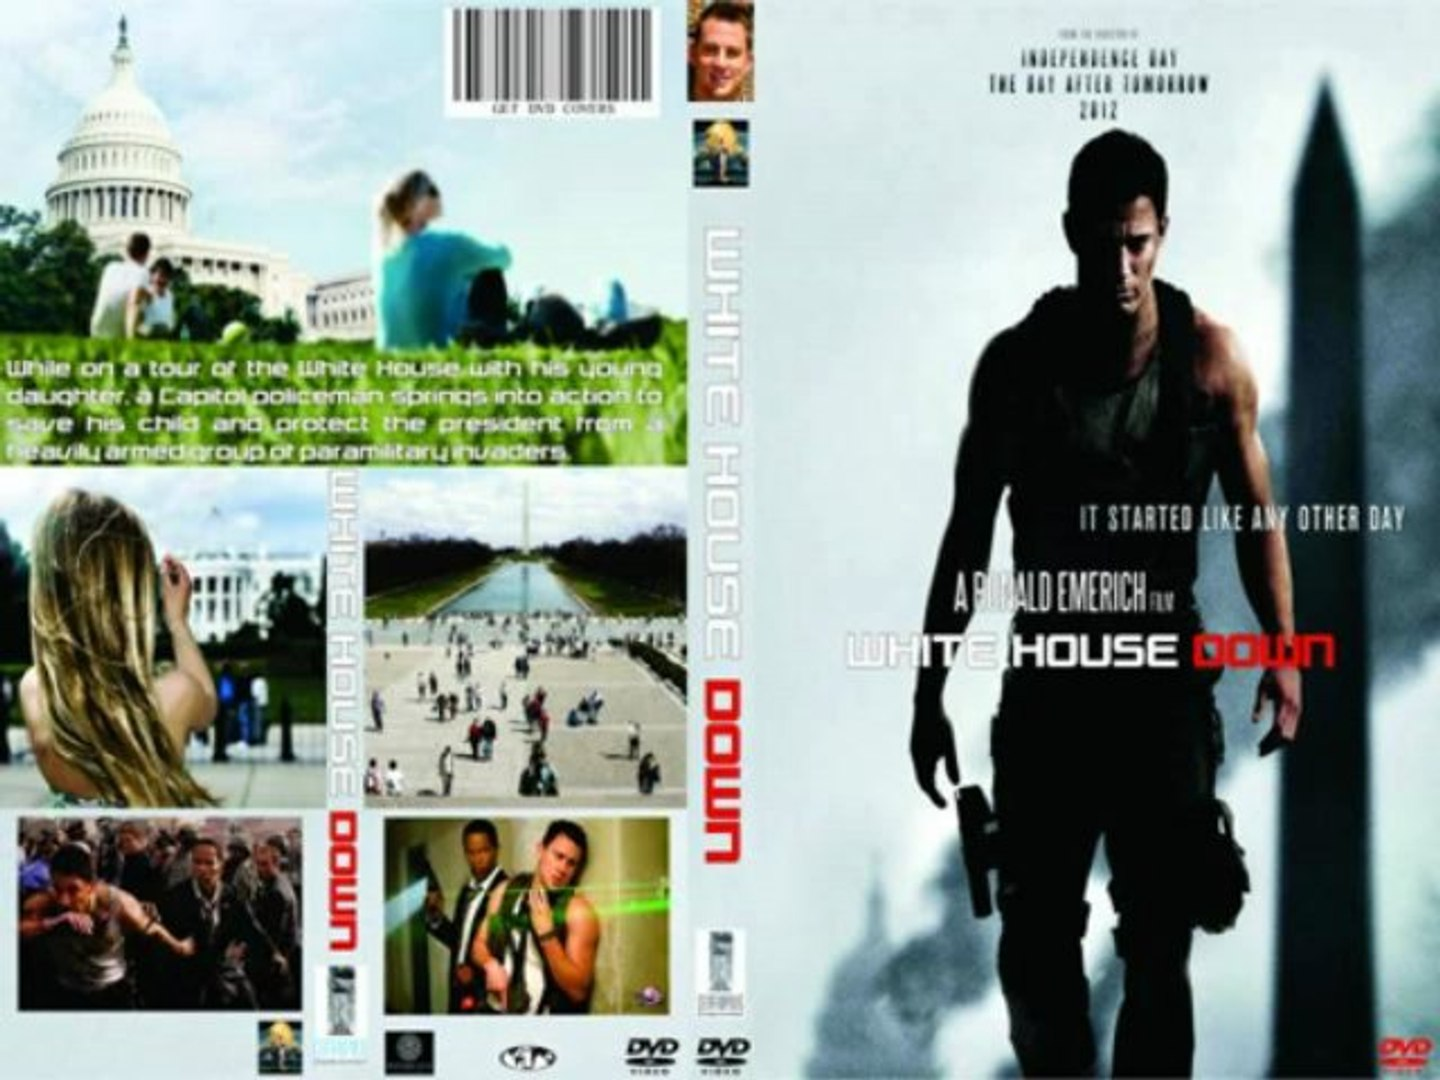 Complete Movie ONLINE White House Down  ++ FREE Movie++ with High Definition 720p [streaming movie b